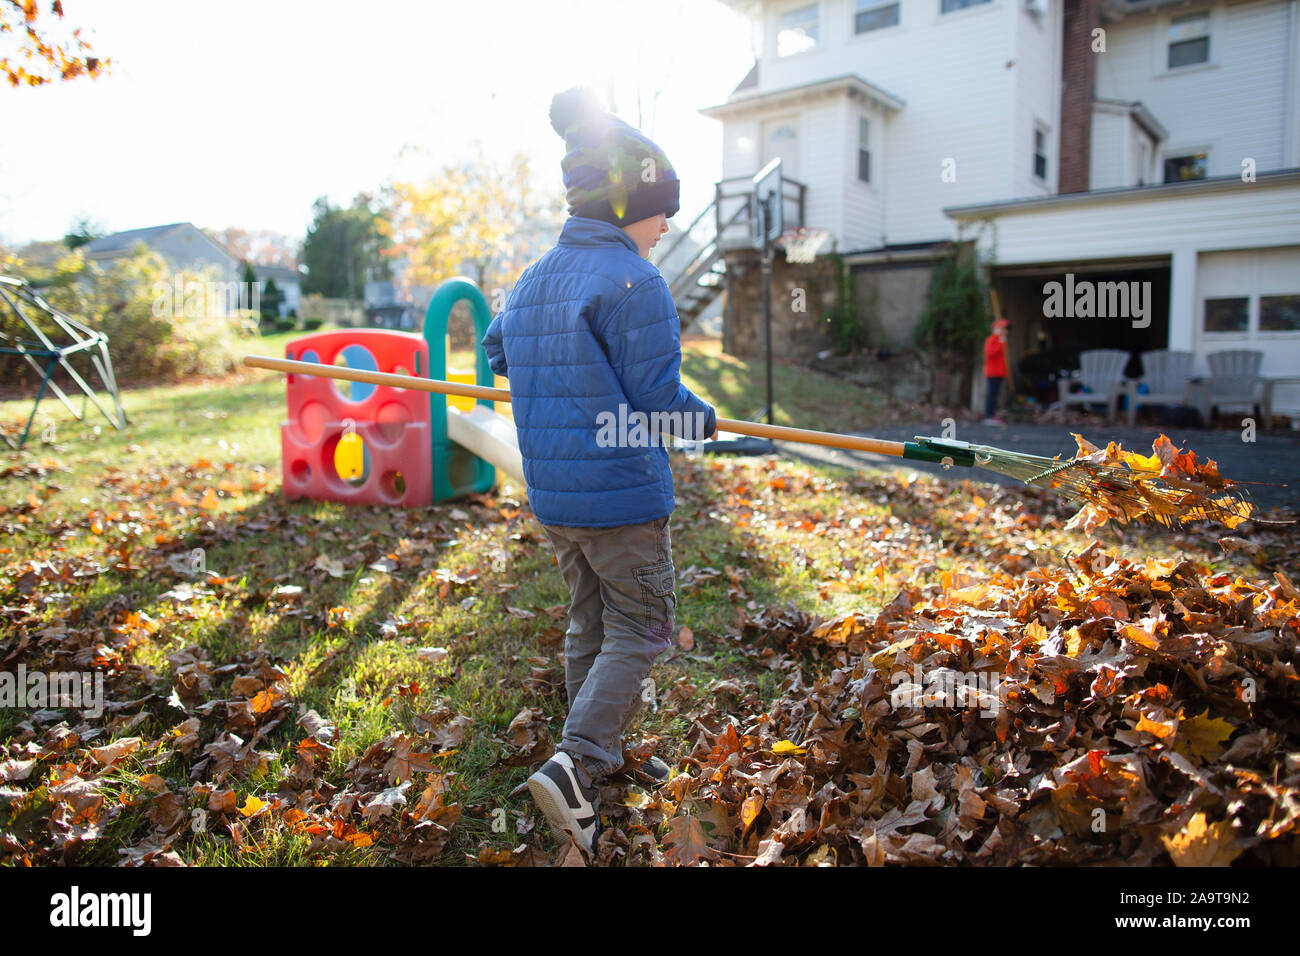 Rear view of a young boy raking leaves during Autumn in the backyard Stock Photo